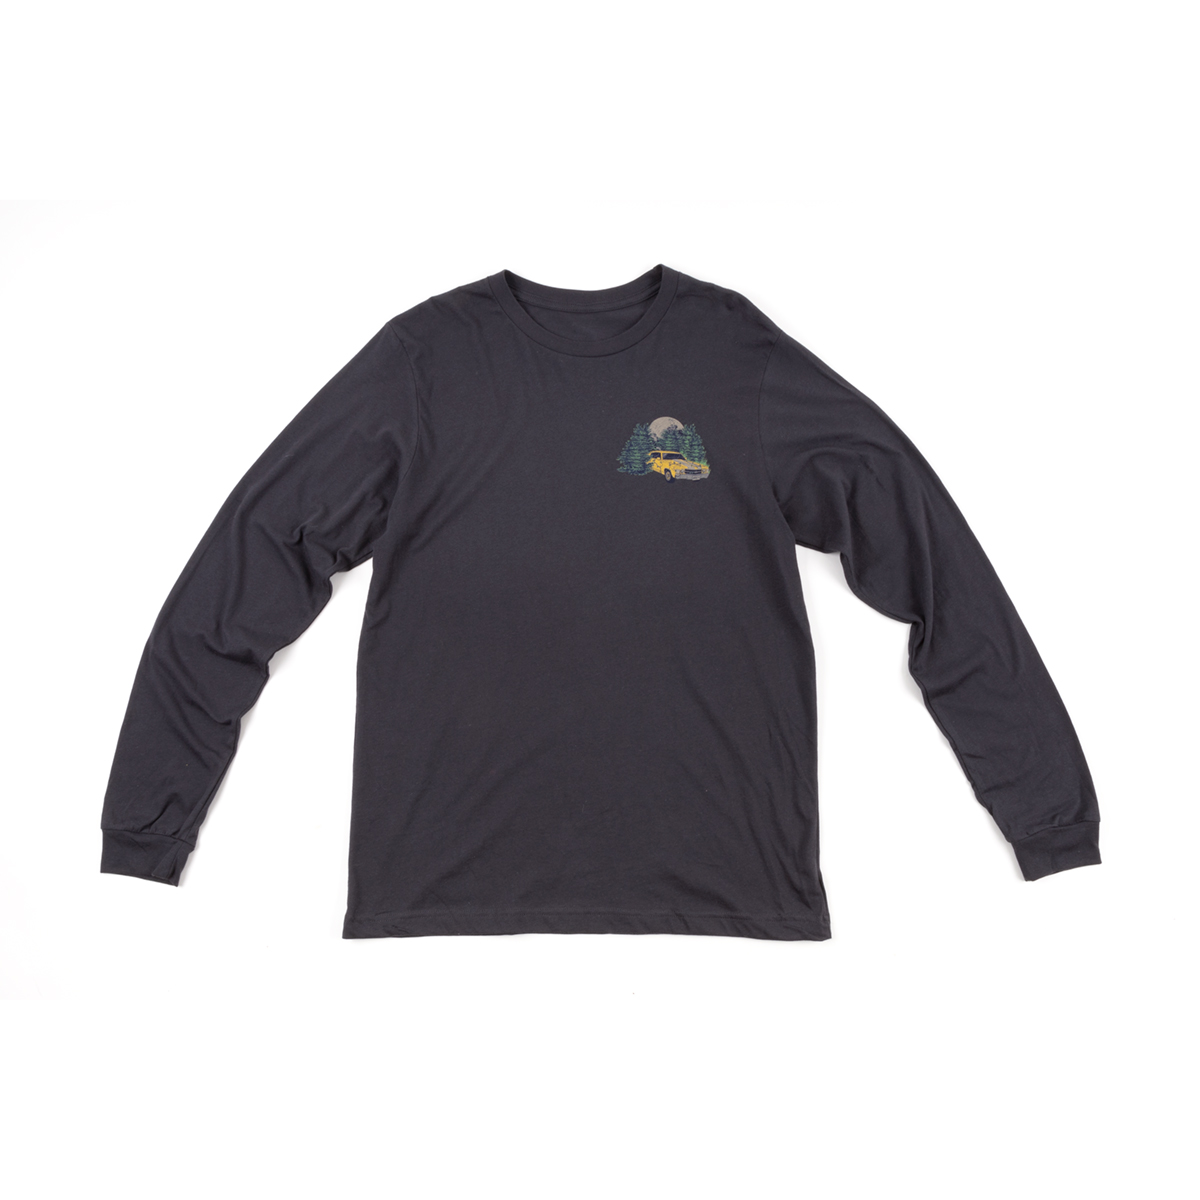 Charcoal Long Sleeve Tree Shirt